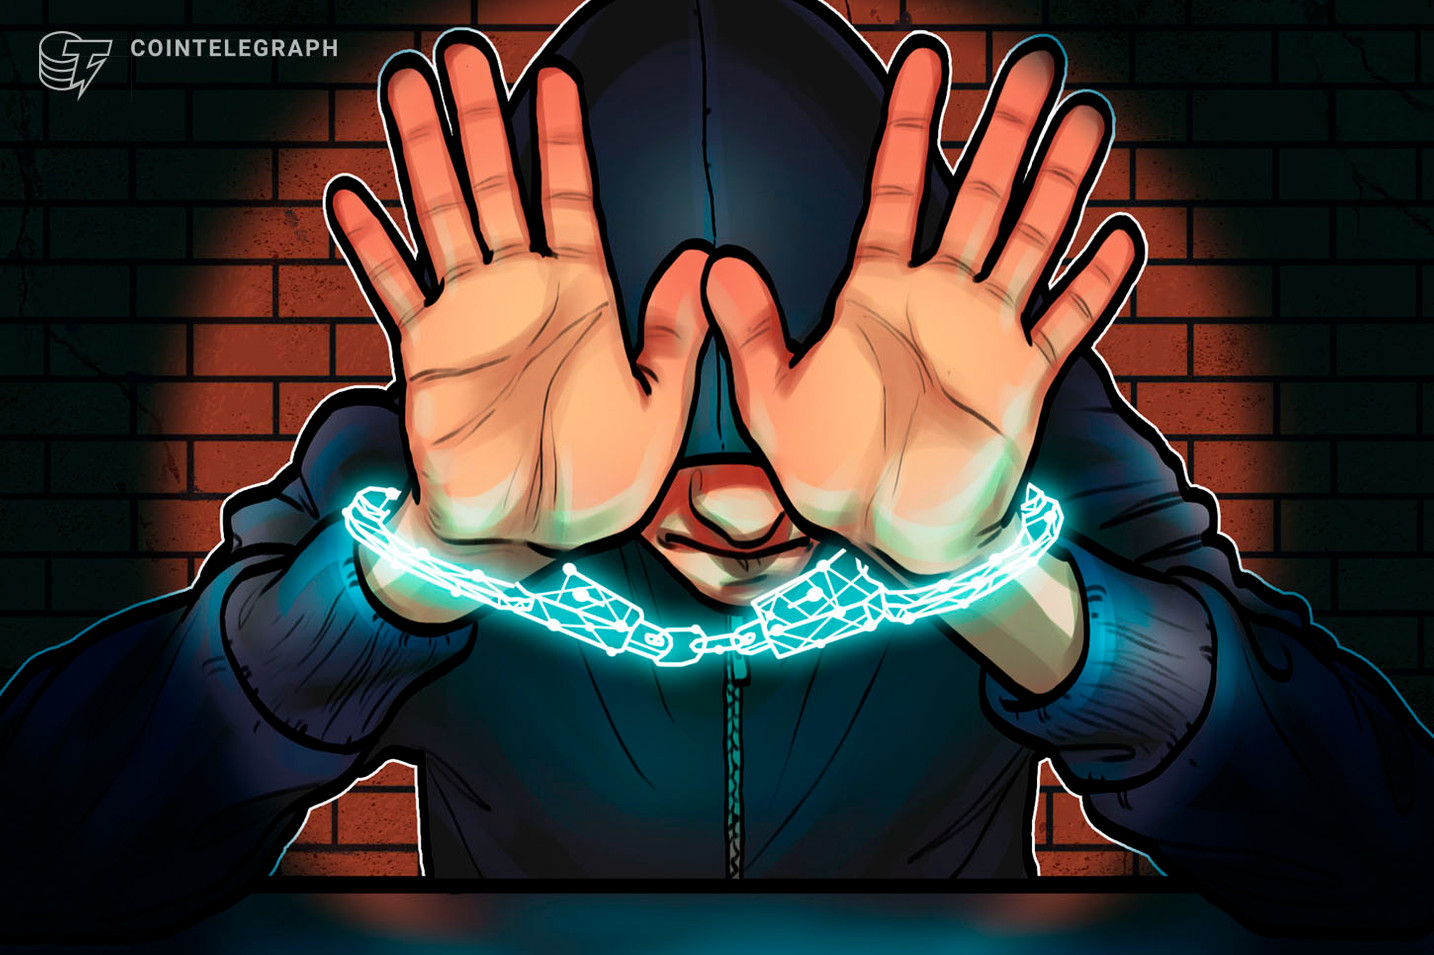 ICO fraudster pleads guilty to $7M COVID-relief loan scam